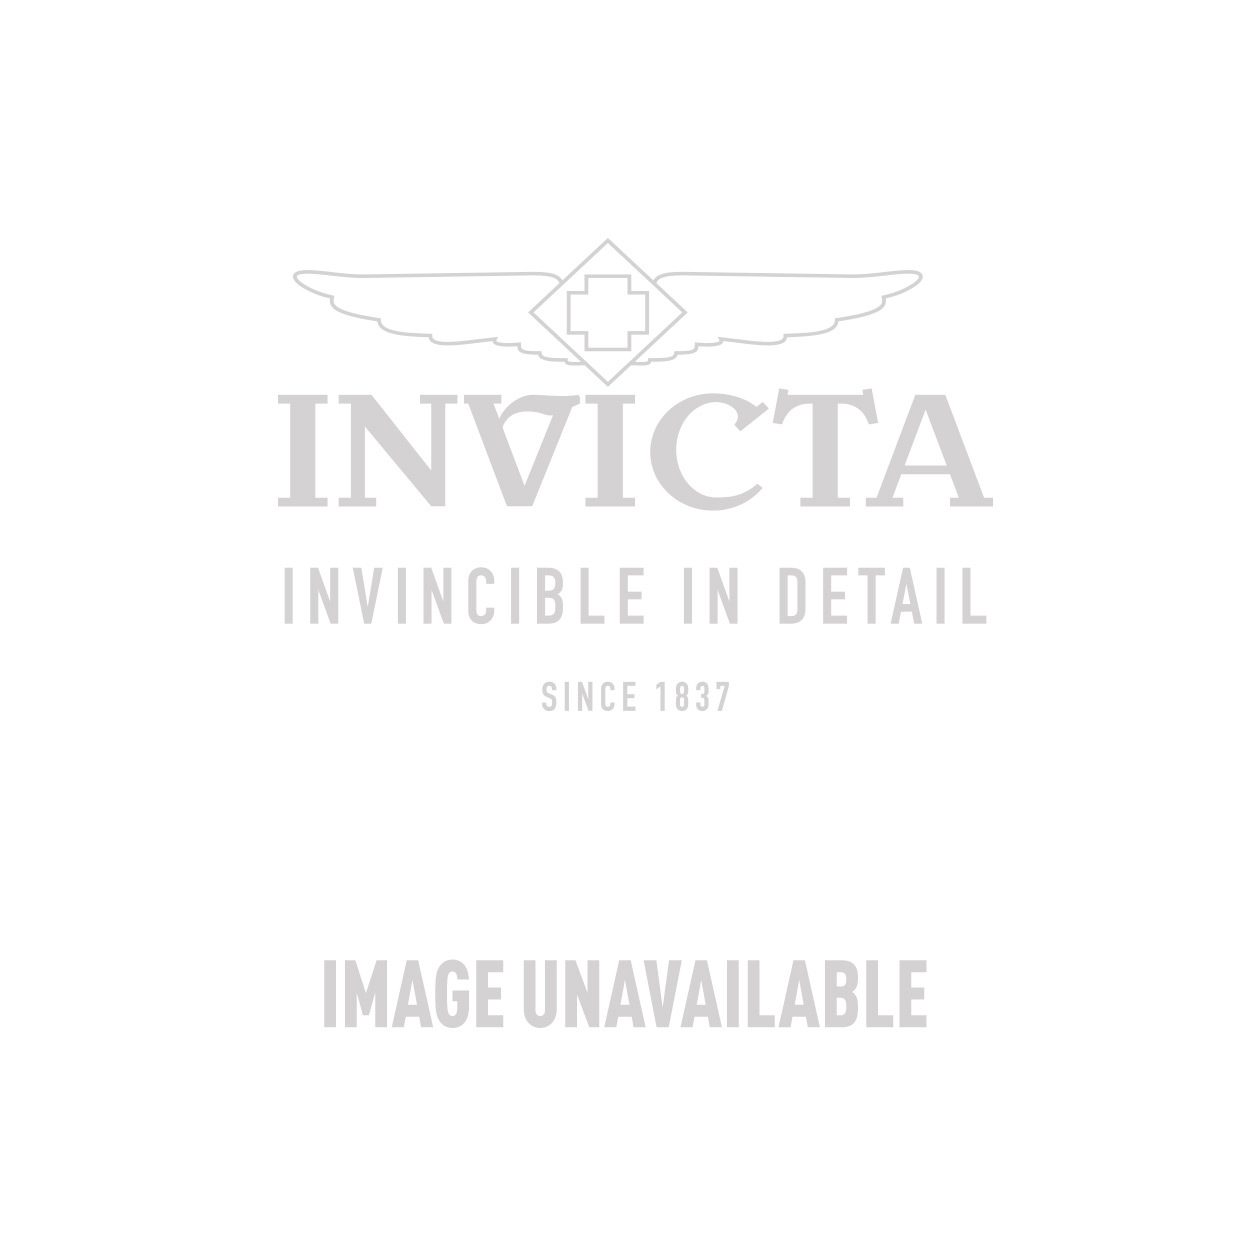 Invicta Corduba Quartz Watch - Stainless Steel case with Sesame tone Leather band - Model 90216